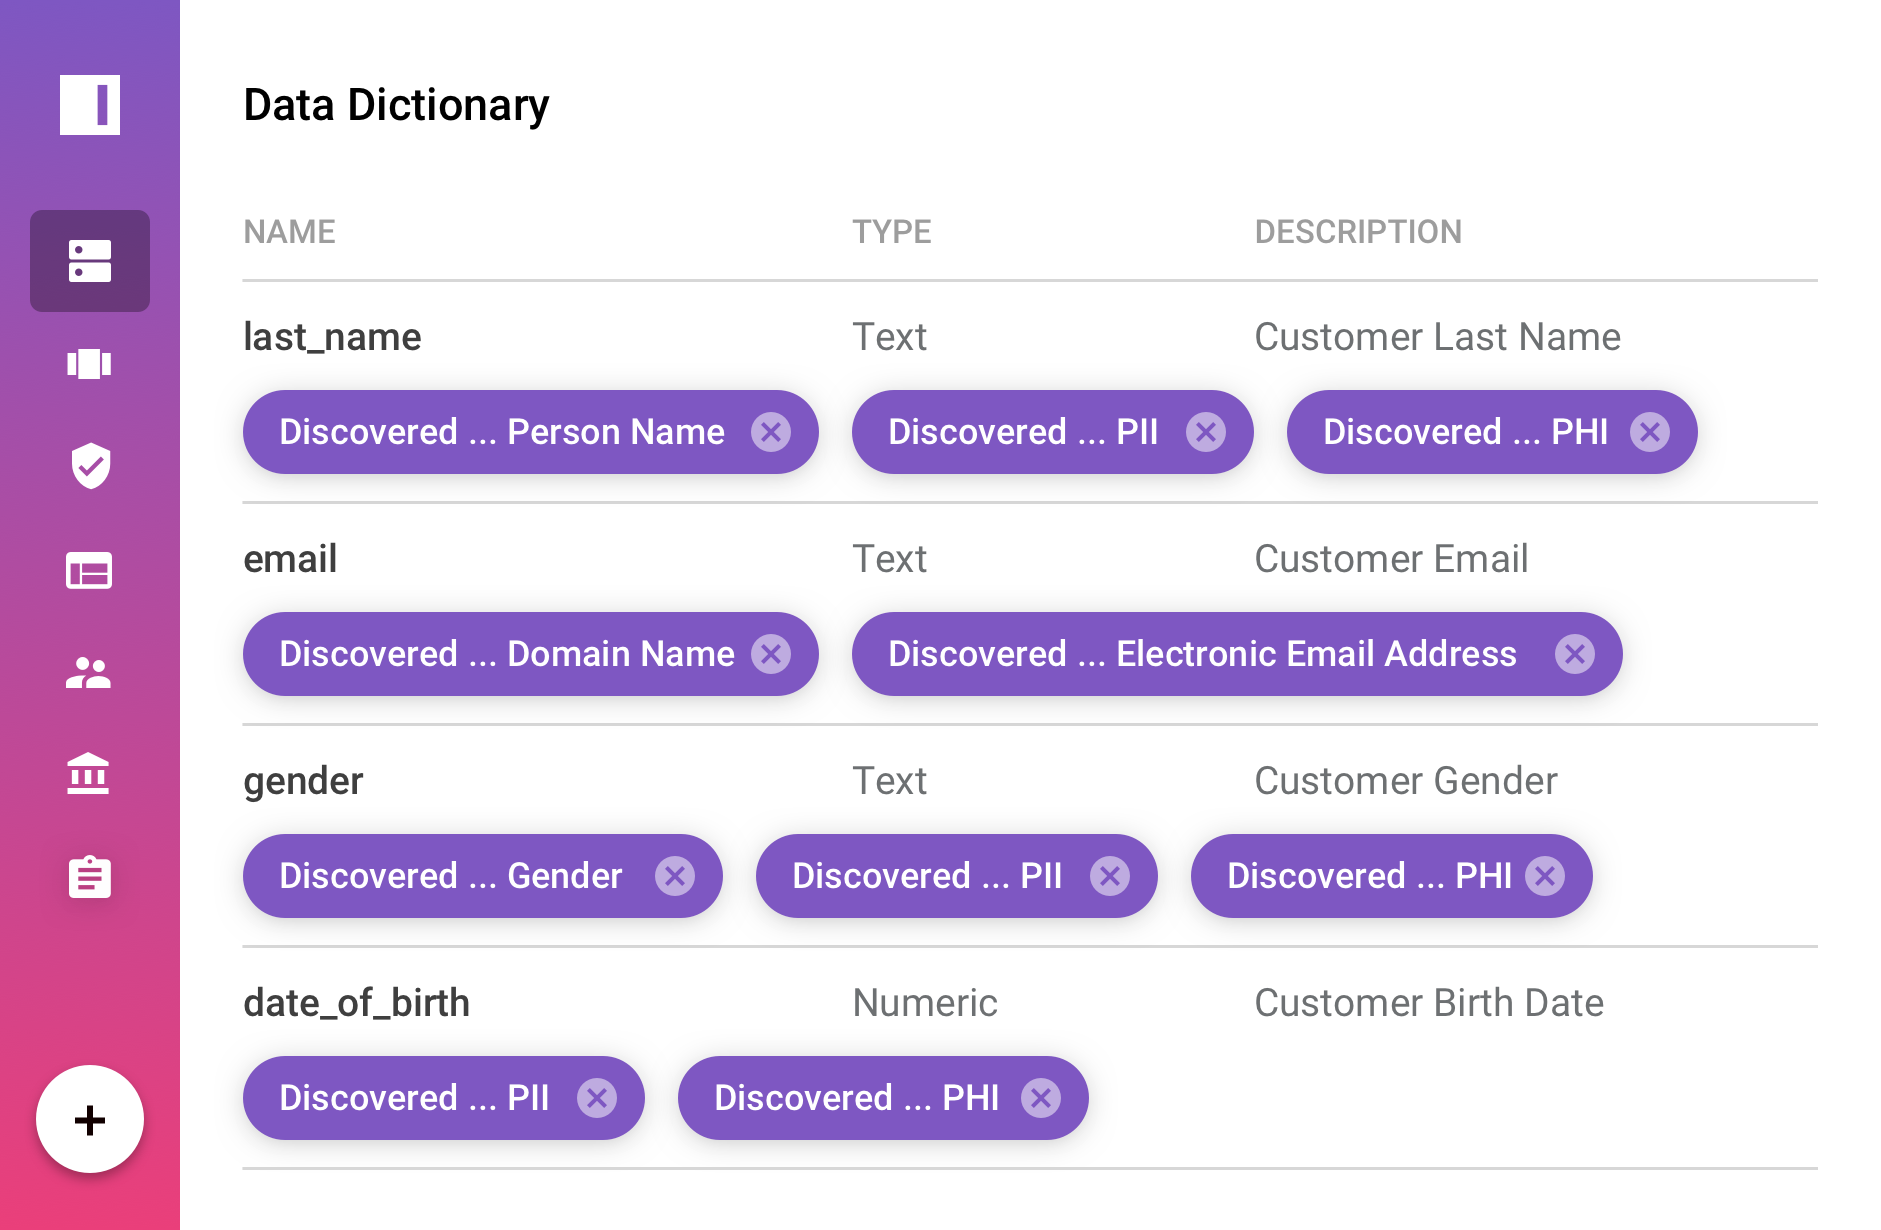 Data Discovery and Tagging in Immuta